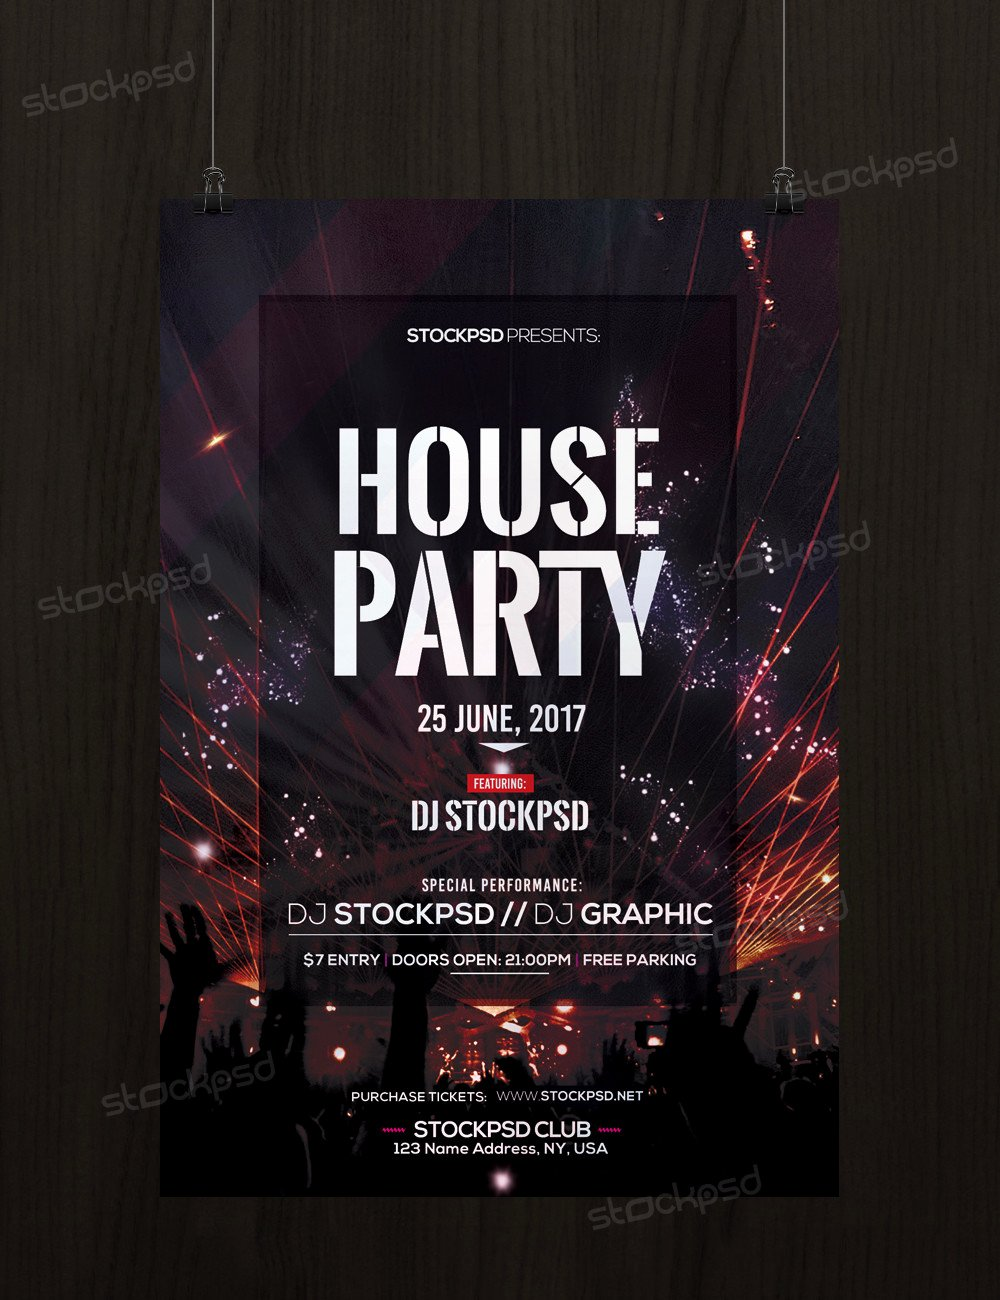 House Party Download Free Psd Flyer Template Stockpsd